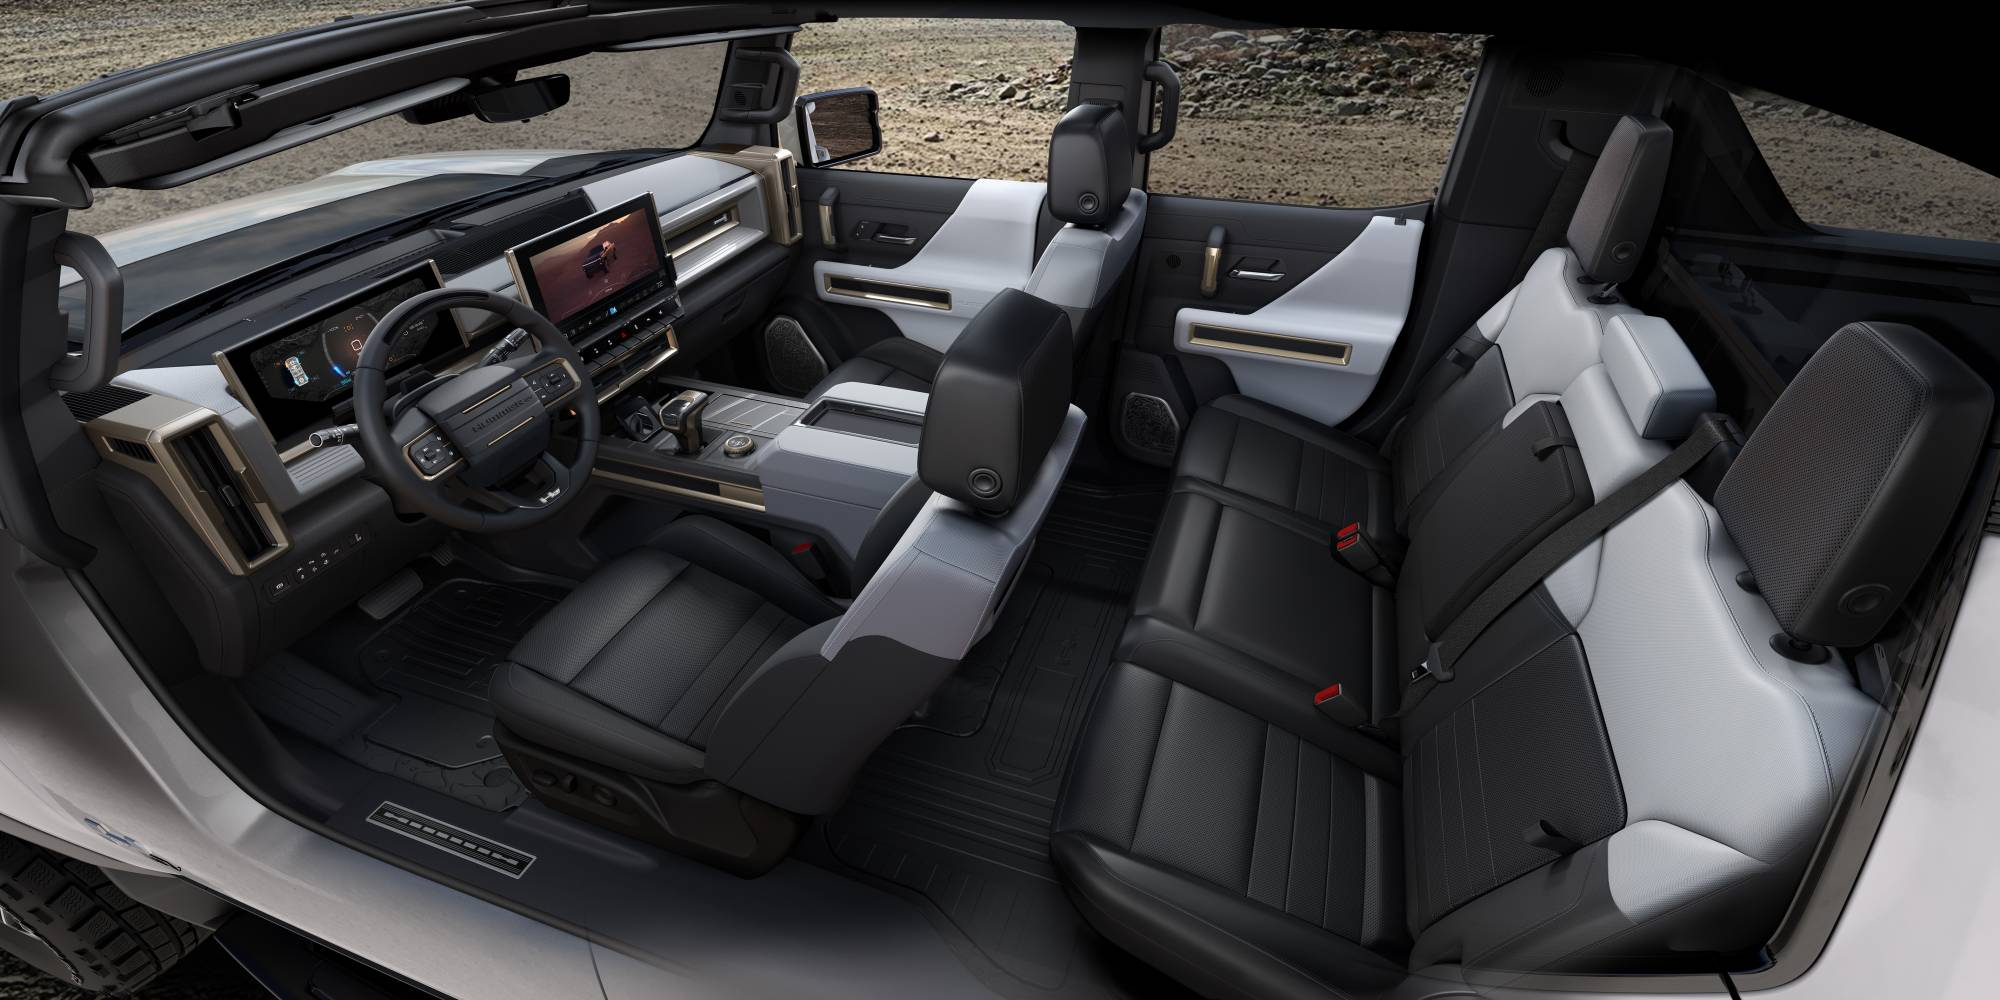 General Motors' Hummer electric vehicle will be free of leather.   GENERAL MOTORS / VIA THE NEW YORK TIMES